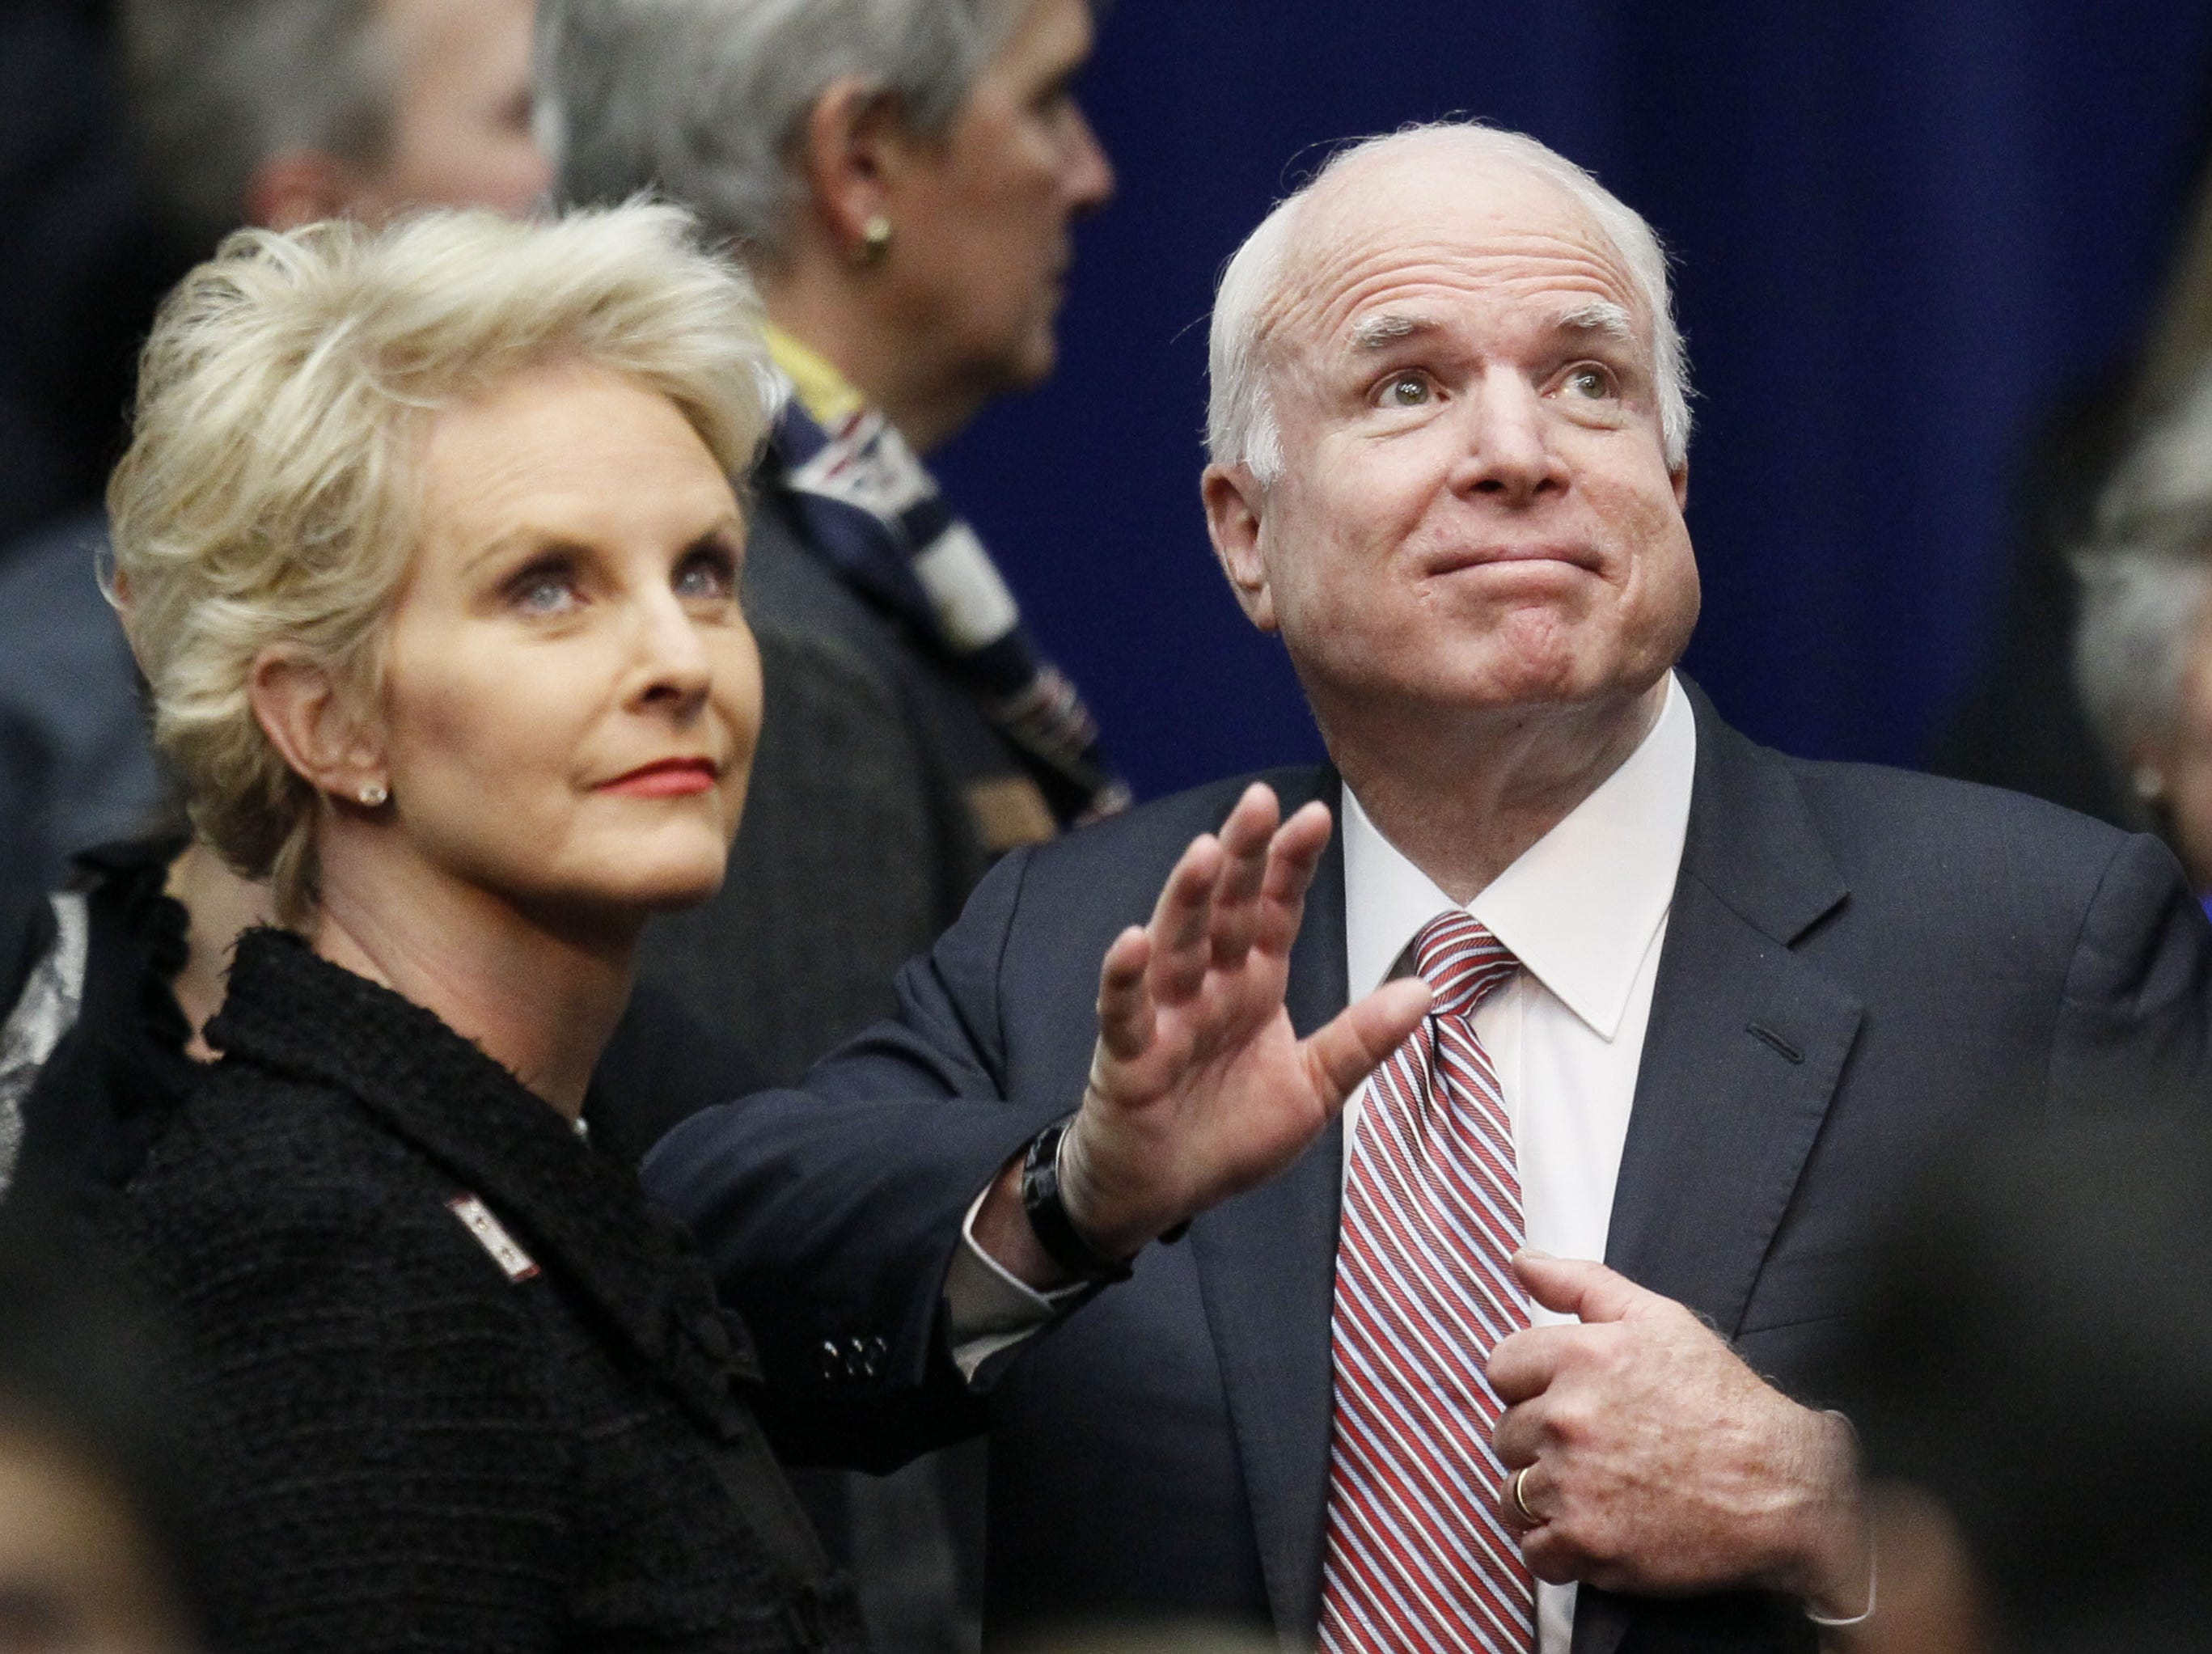 Cindy McCain responds to report her family supports Biden in 2020, has 'no intention' to get involved